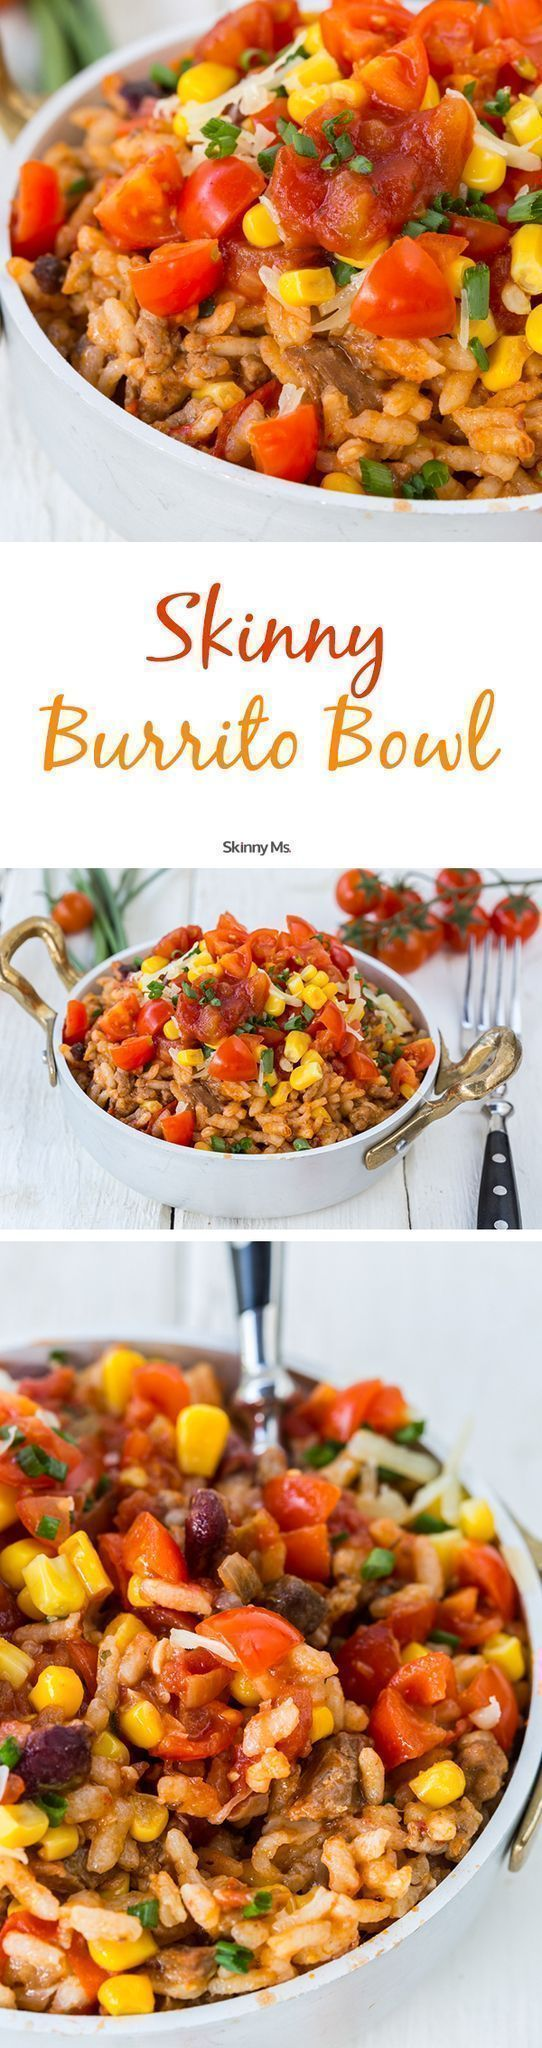 Por favor! These Skinny Ms. Burrito Bowls are so yummy that the tortilla won't be missed. #recipes